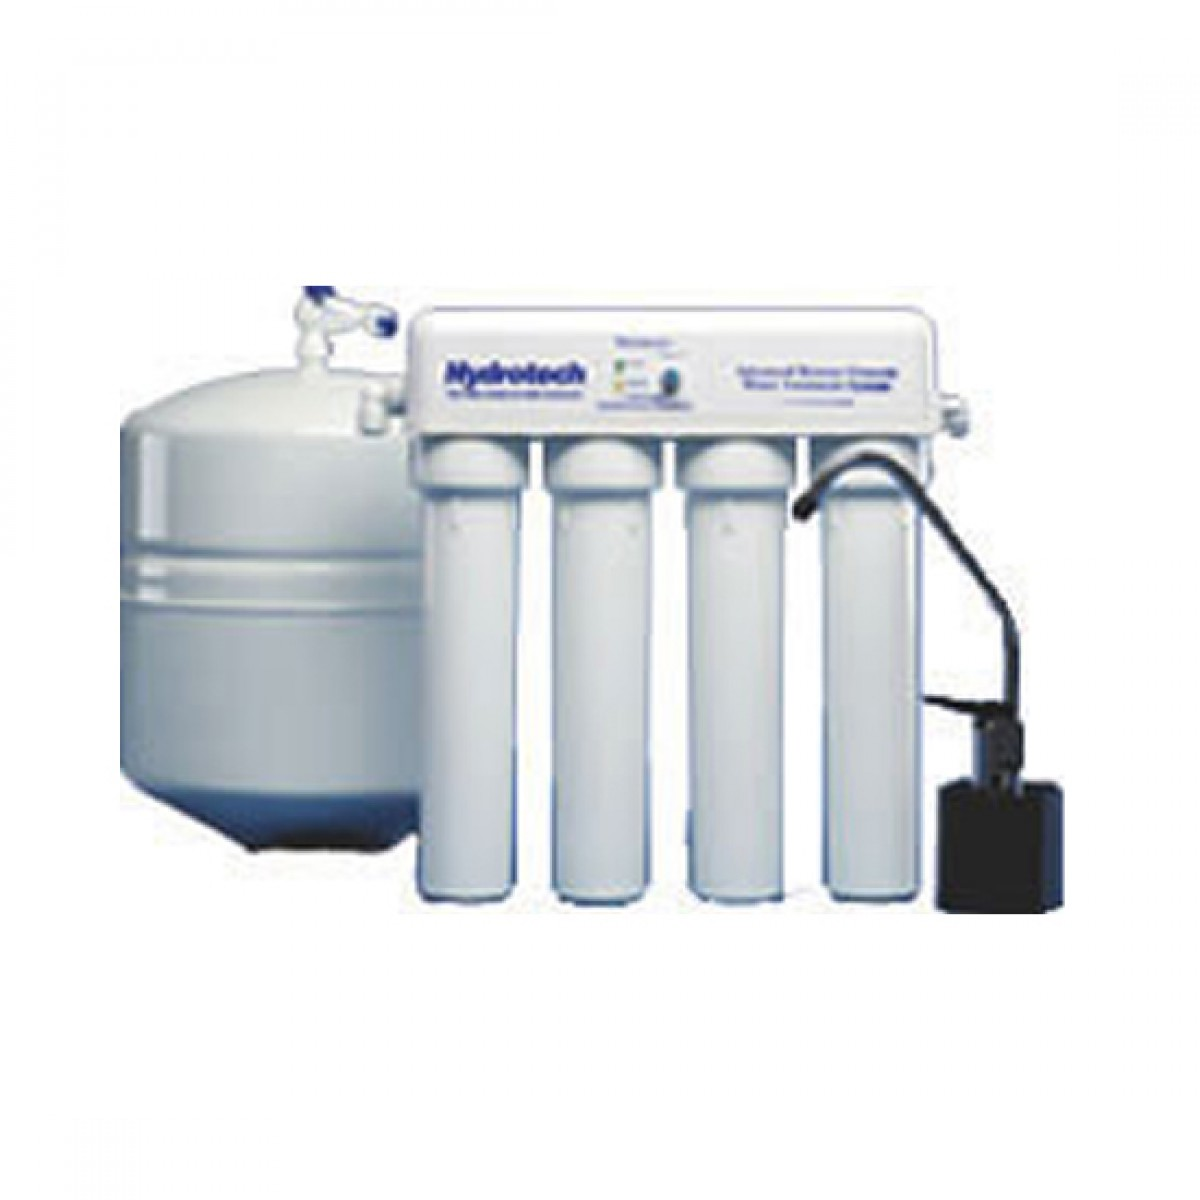 Hydrotech 4vtfc75g Pb Pushbutton Reverse Osmosis System